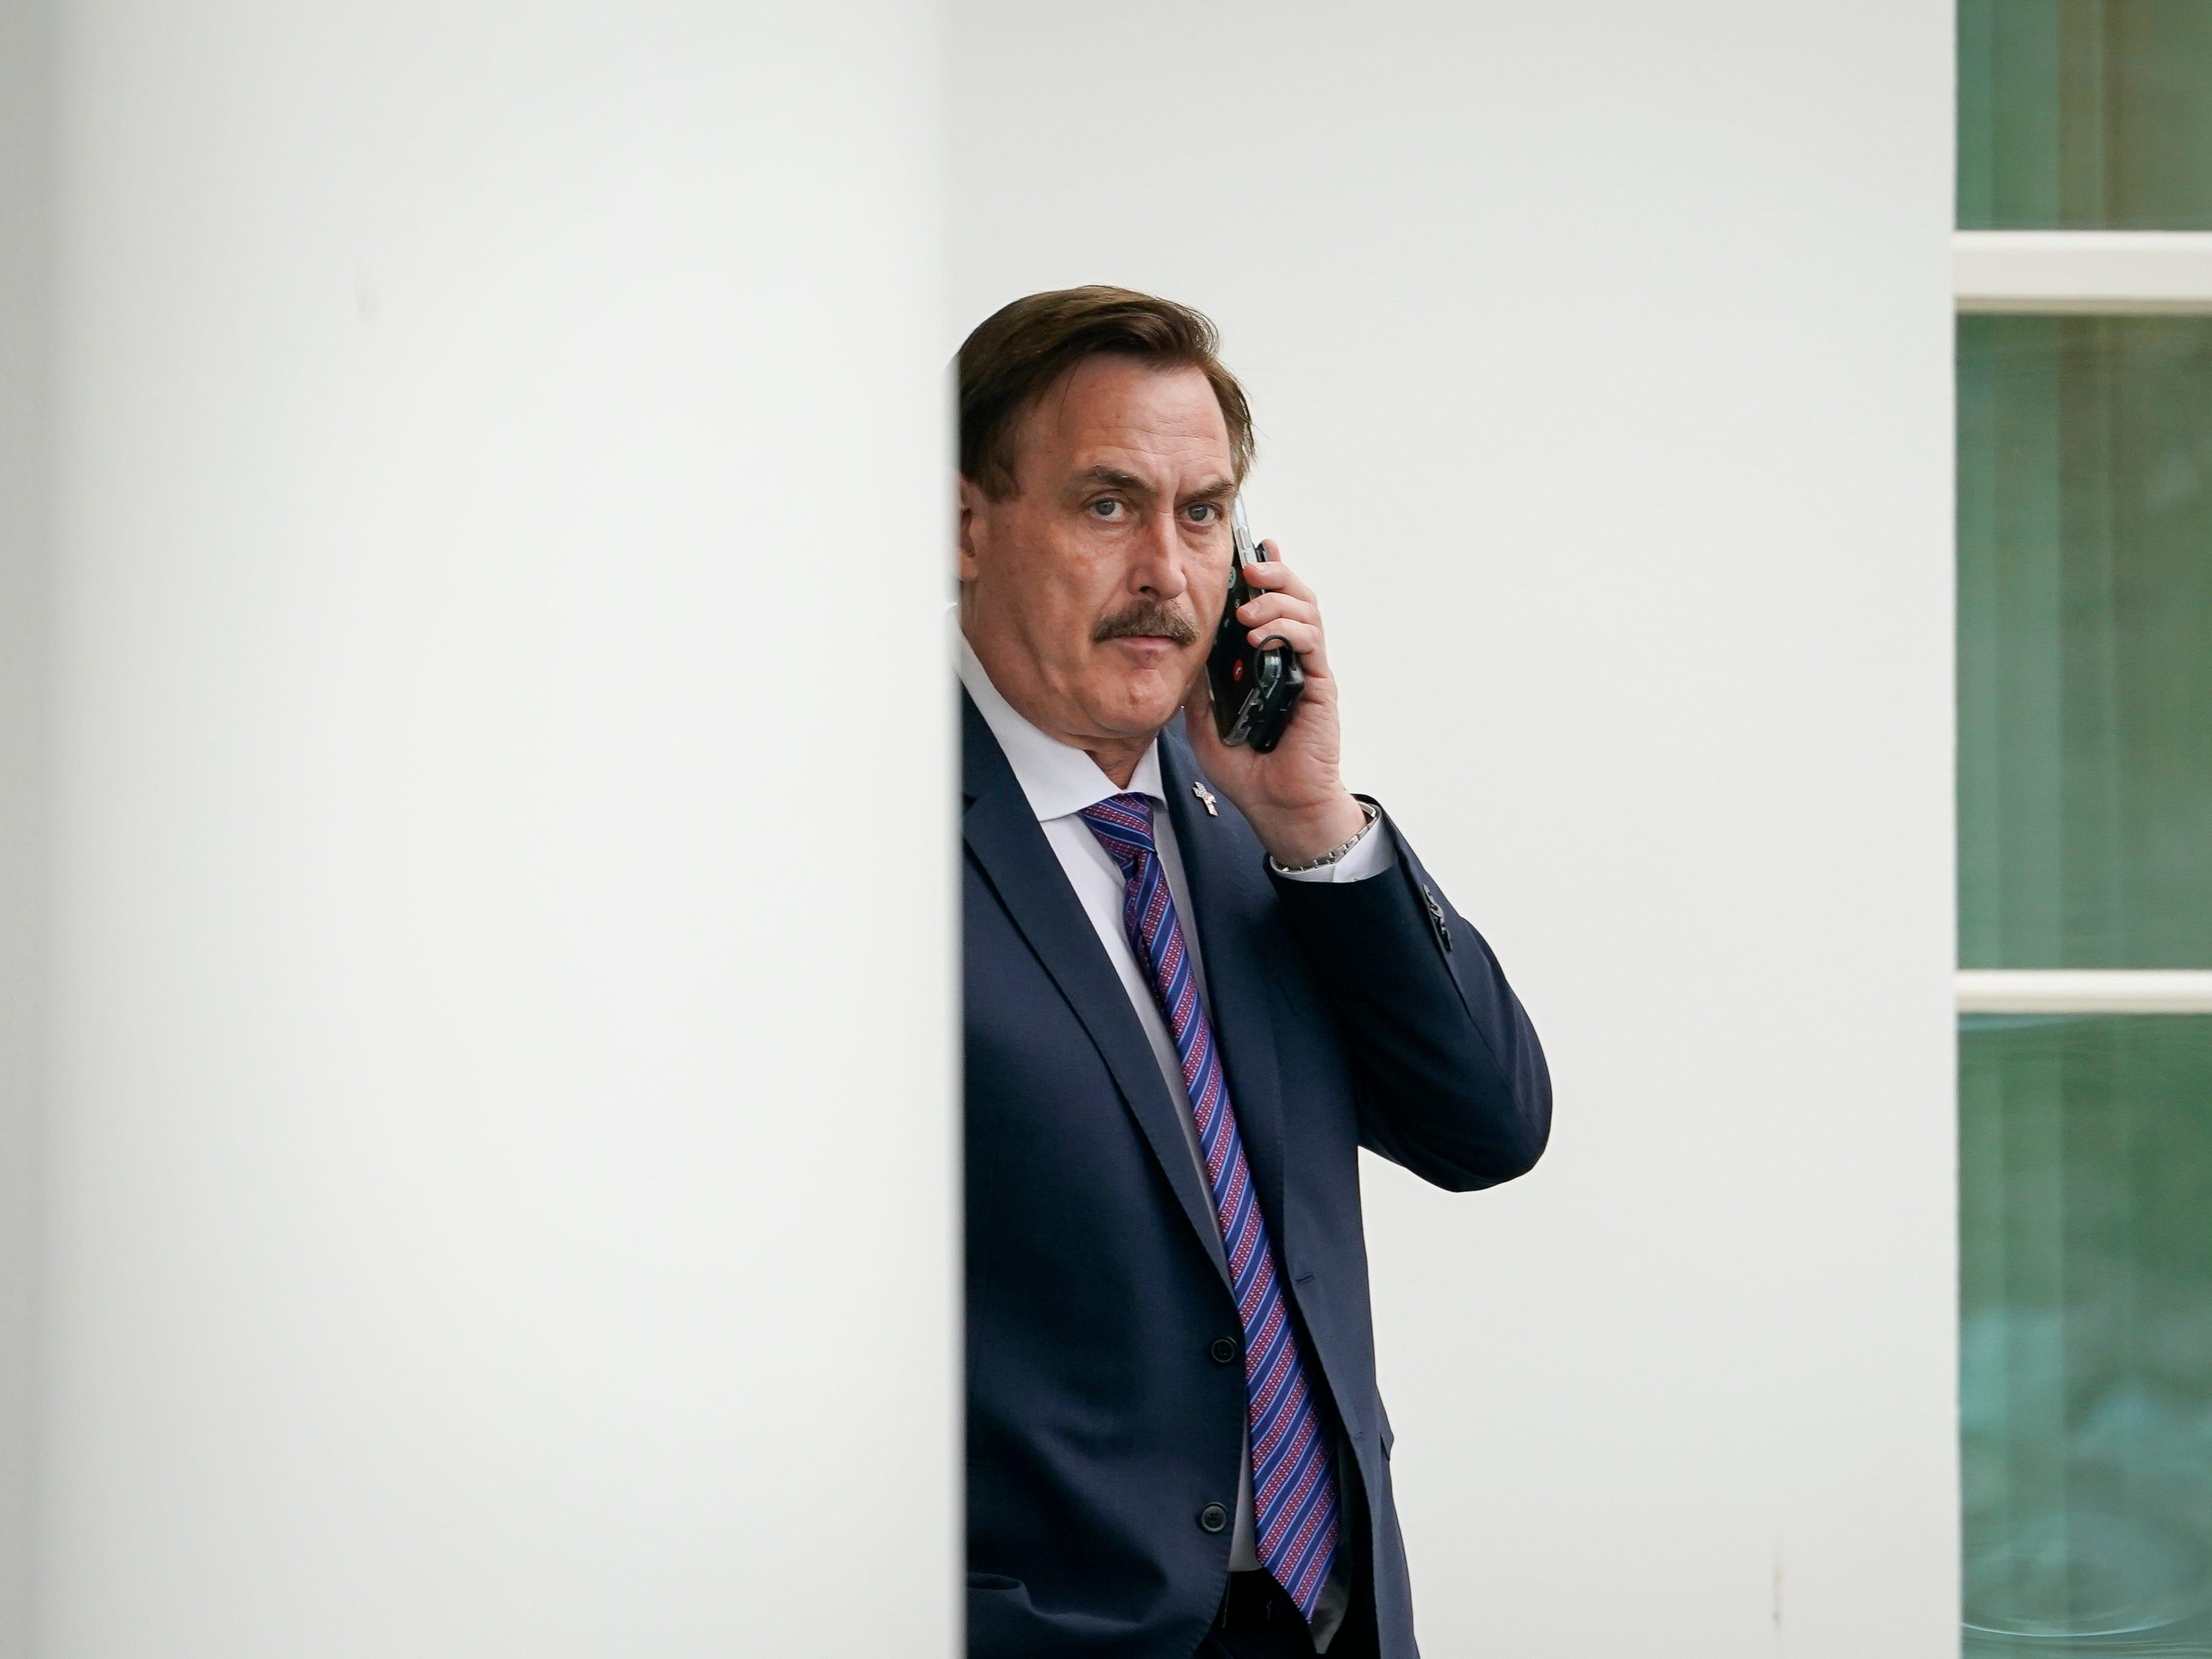 MyPillow CEO Mike Lindell - Tucker Carlson's biggest sponsor - says he's pulling ads from Fox News because it won't air his commercial about an election-fraud symposium